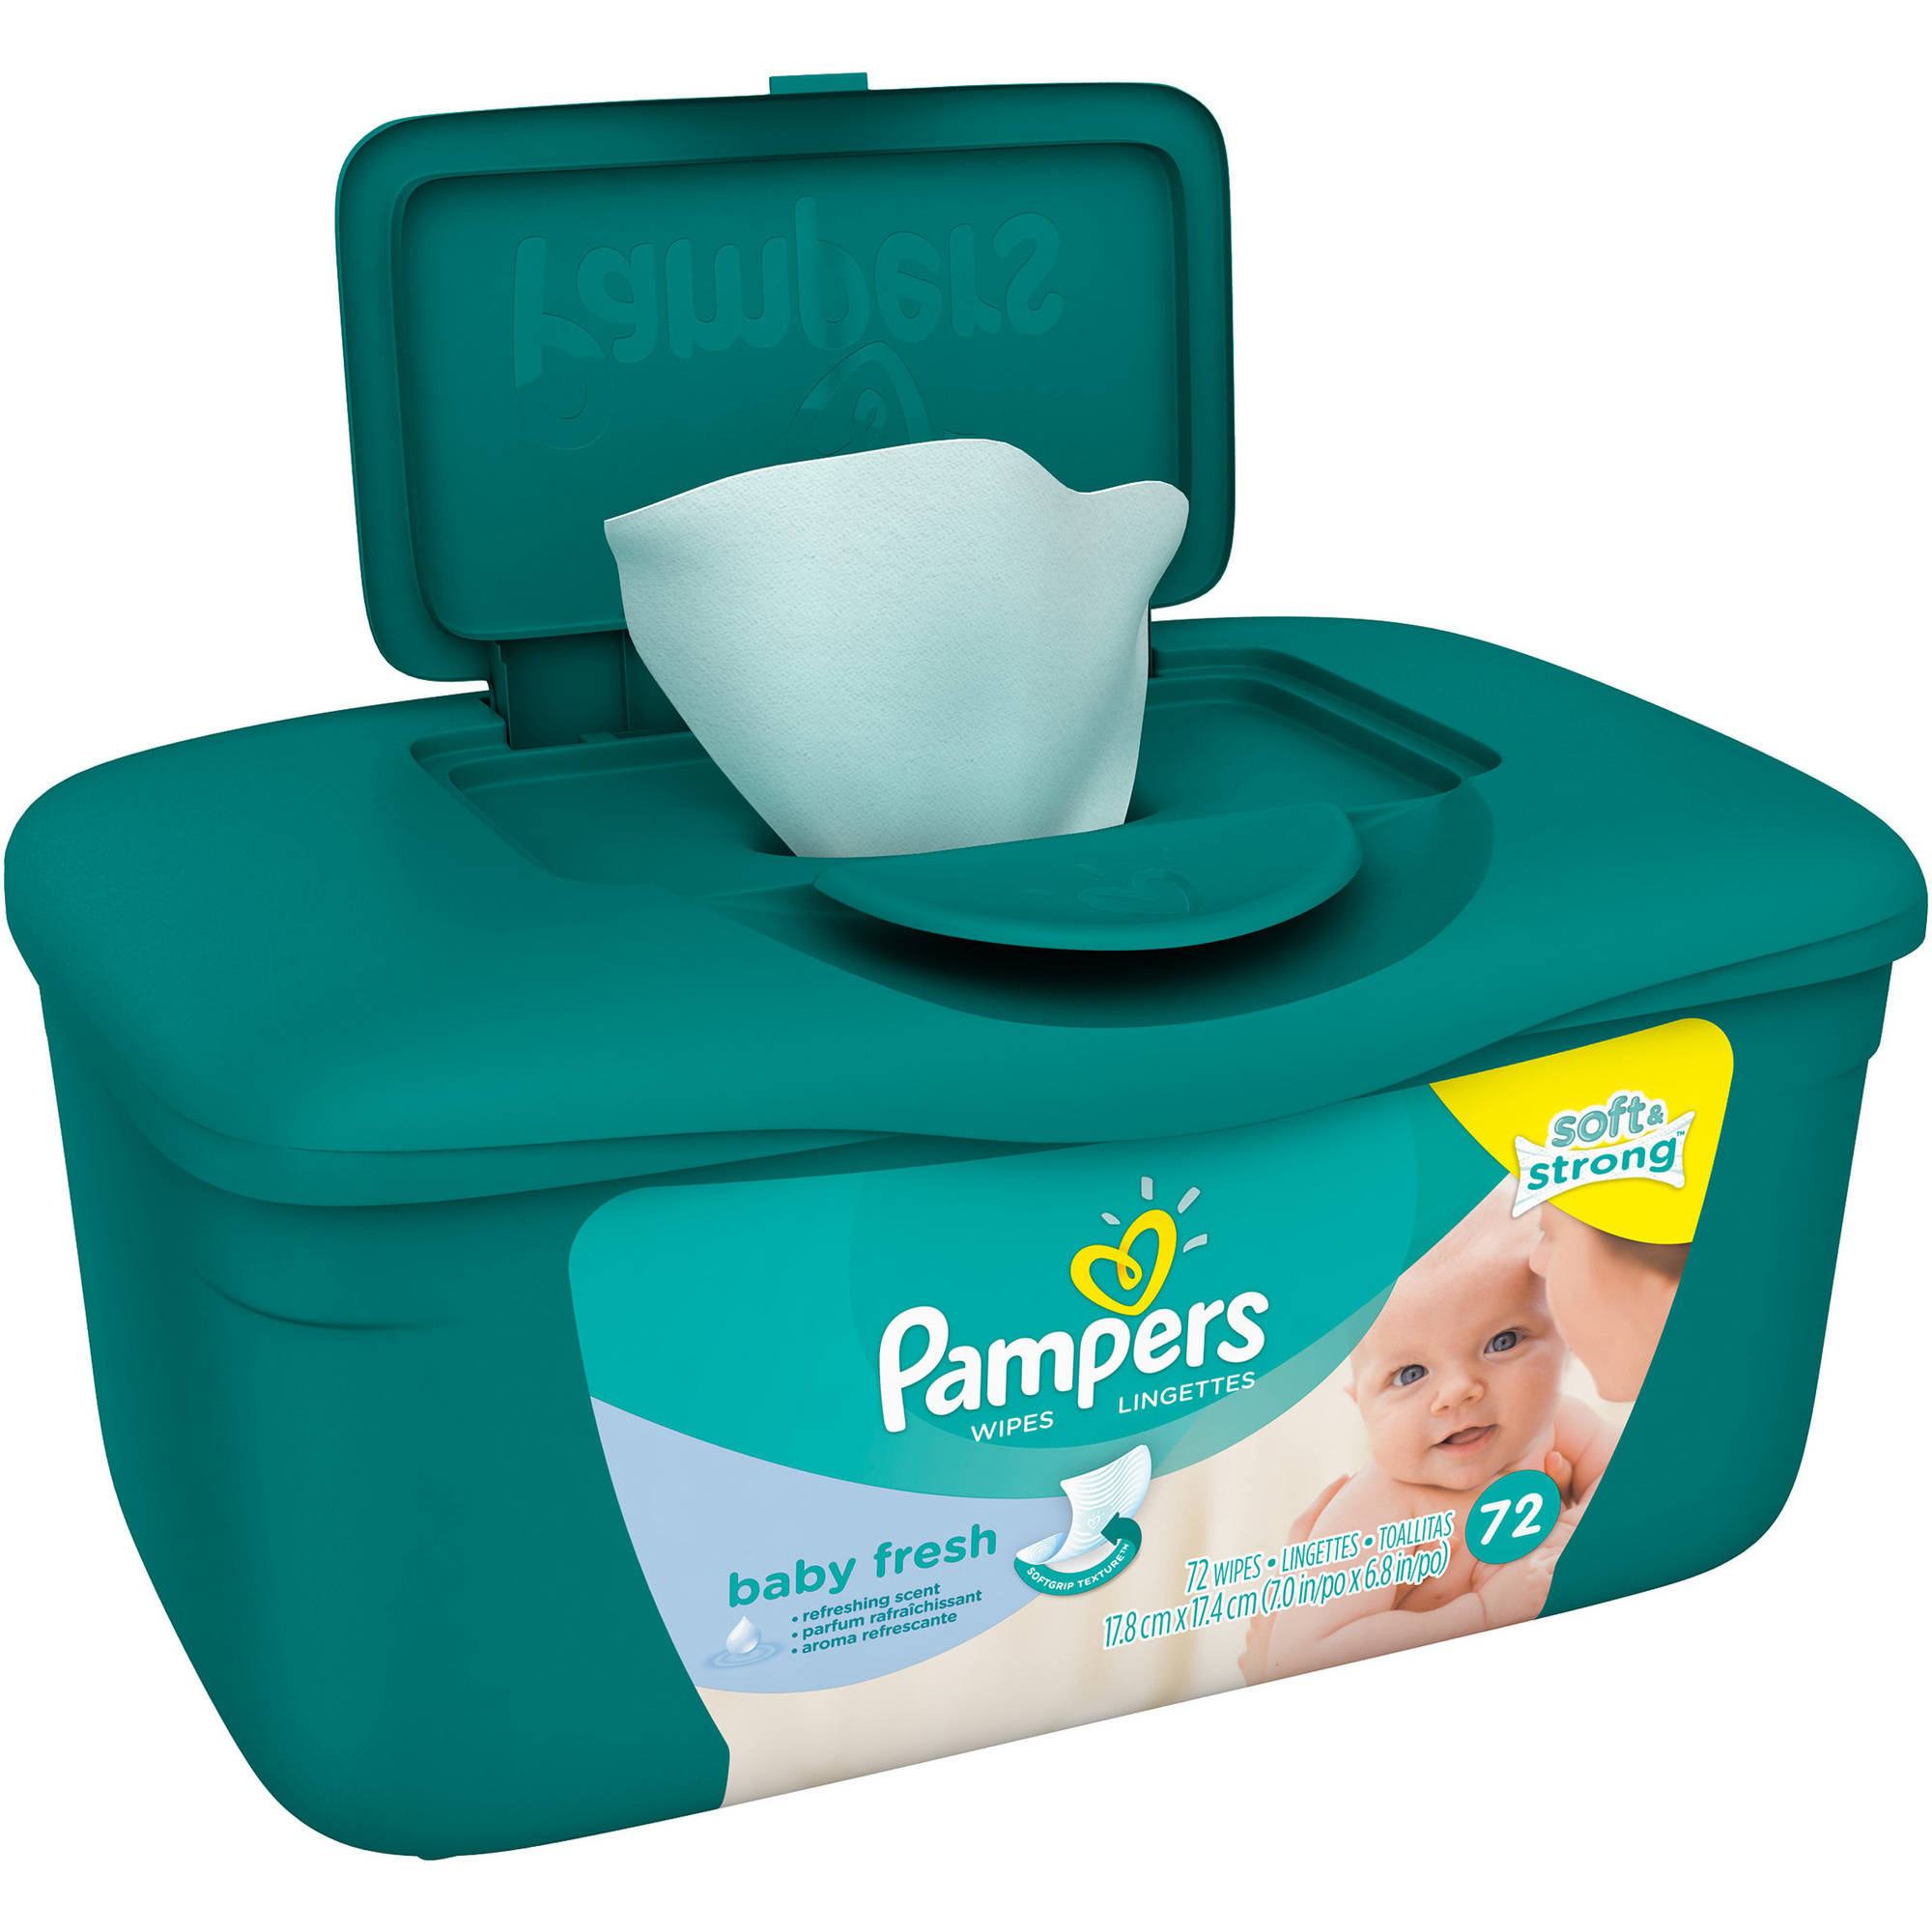 Pampers Baby Fresh Baby Wipes, 72 sheets